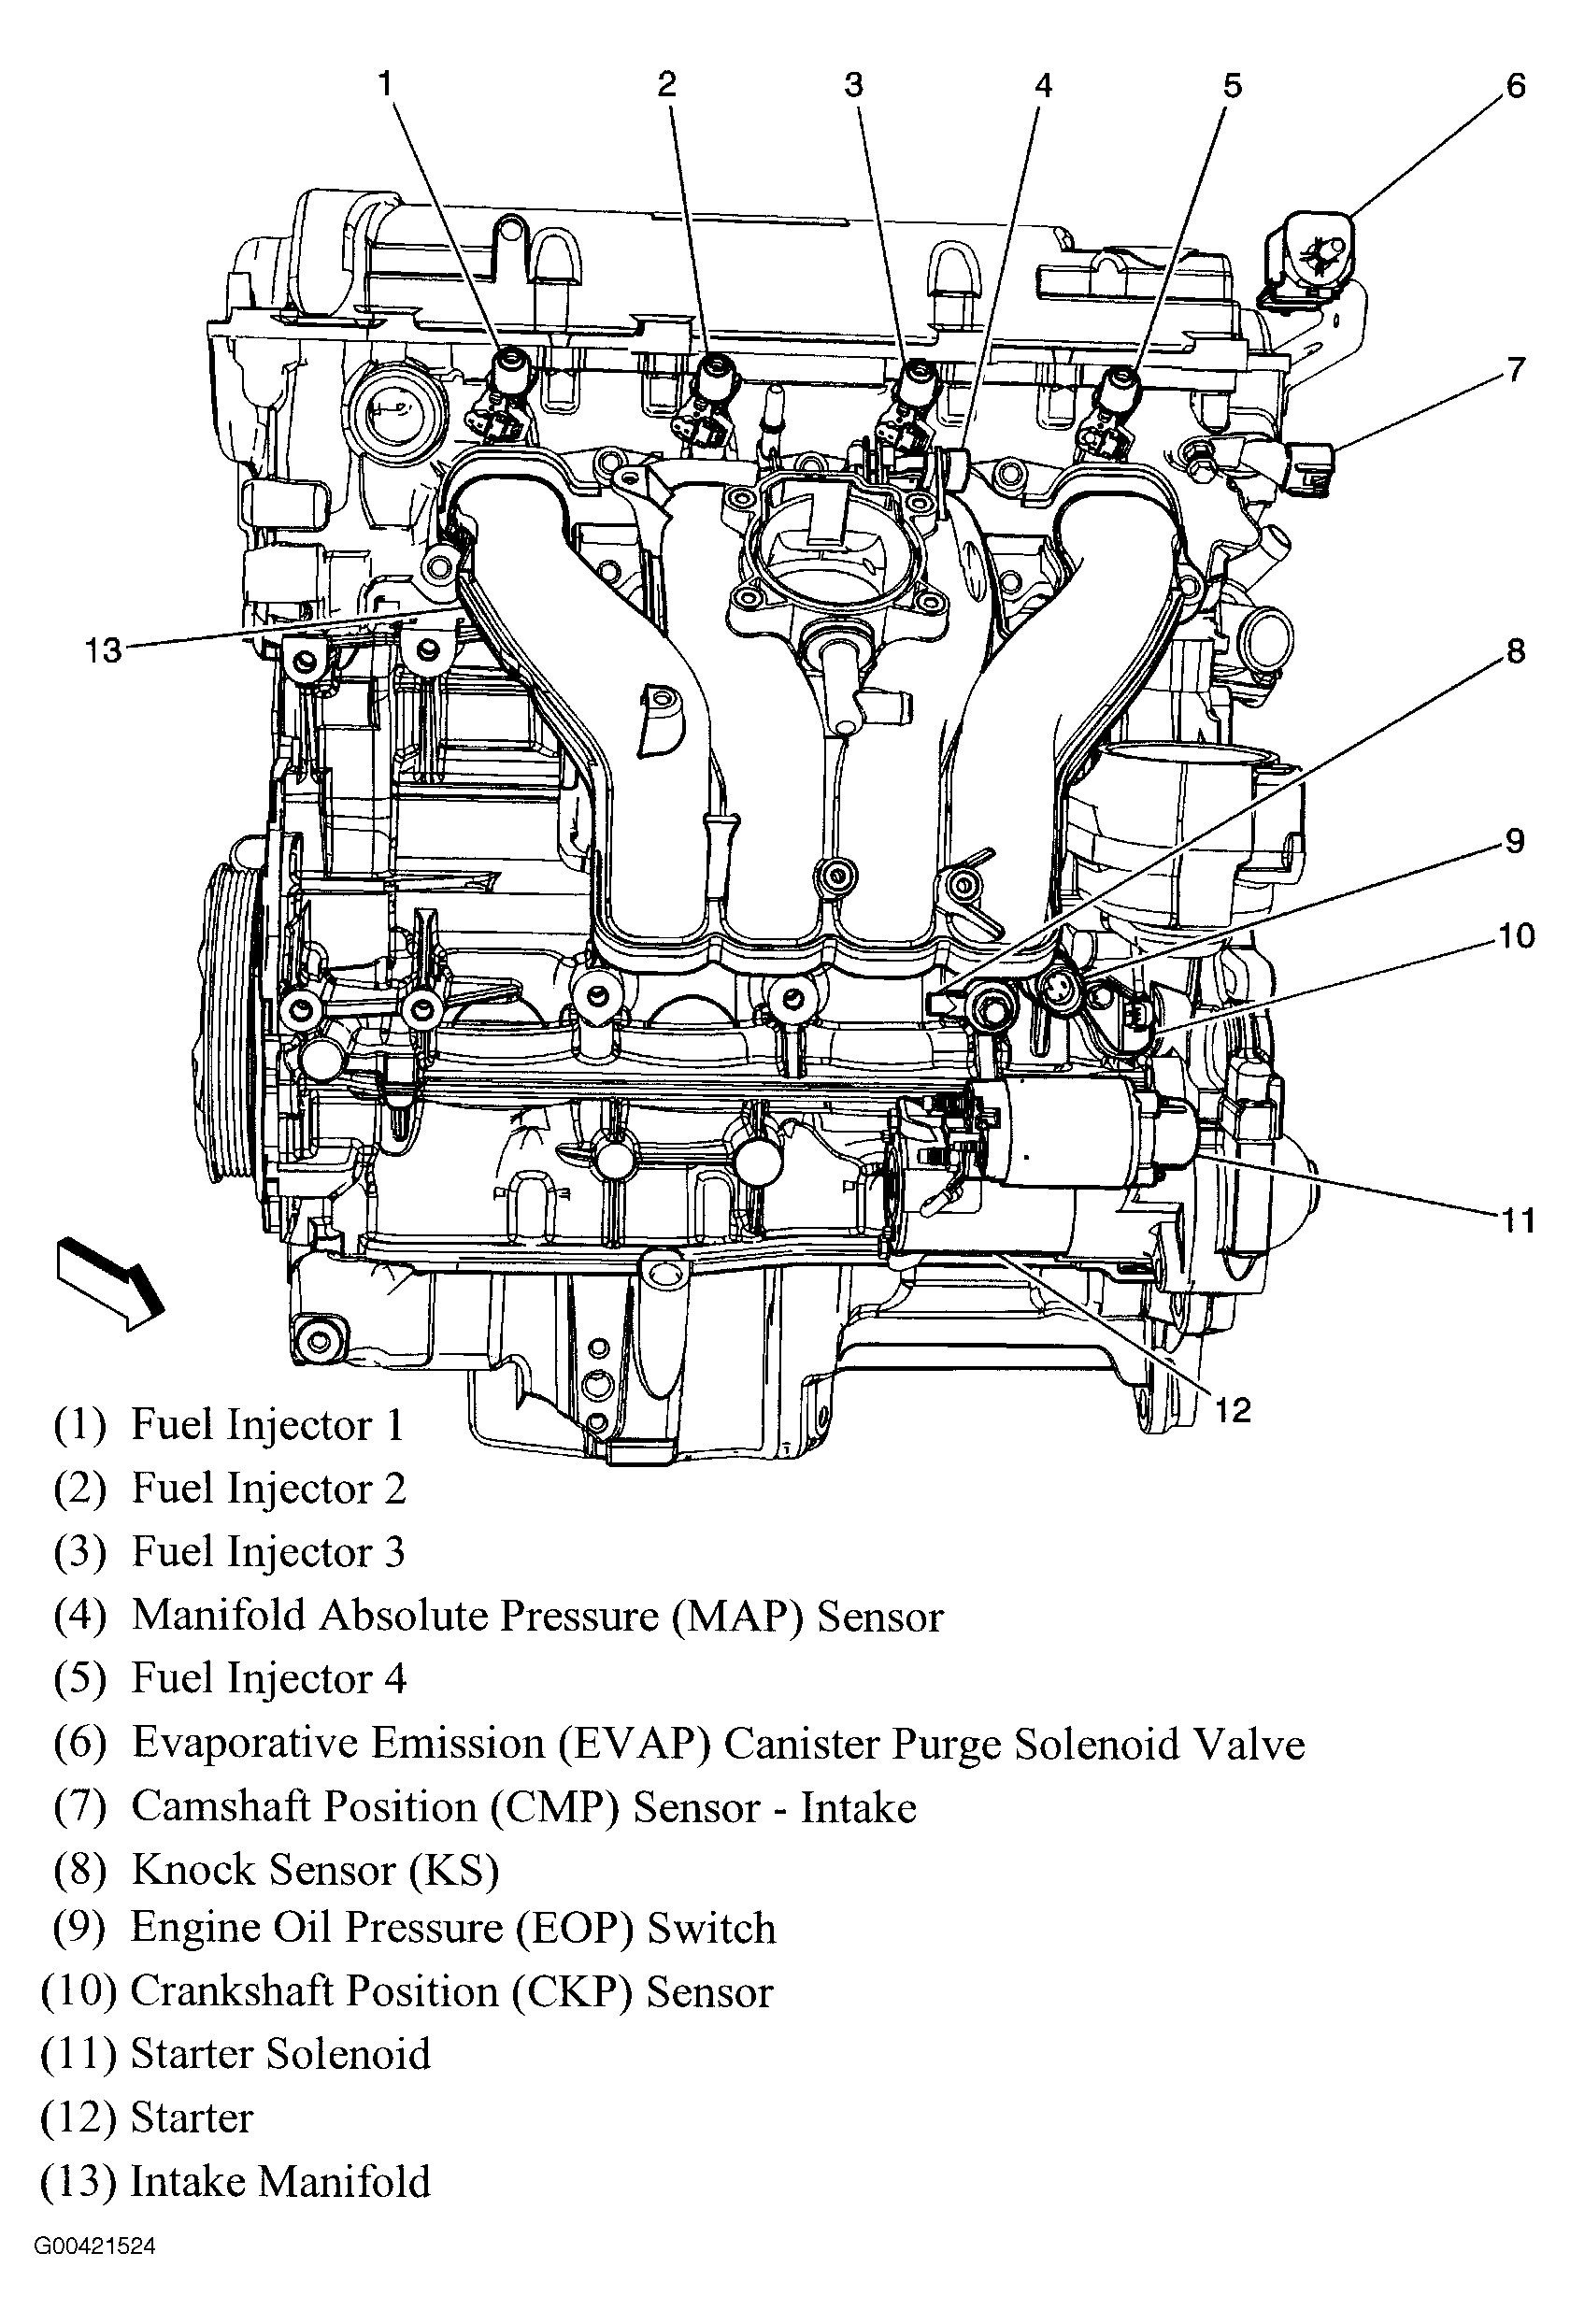 pontiac bonneville 3 8 engine parts diagram wiring diagram library 97 pontiac 3 4 engine diagram wiring diagram third levelpontiac 3 1 v6 engine diagram best